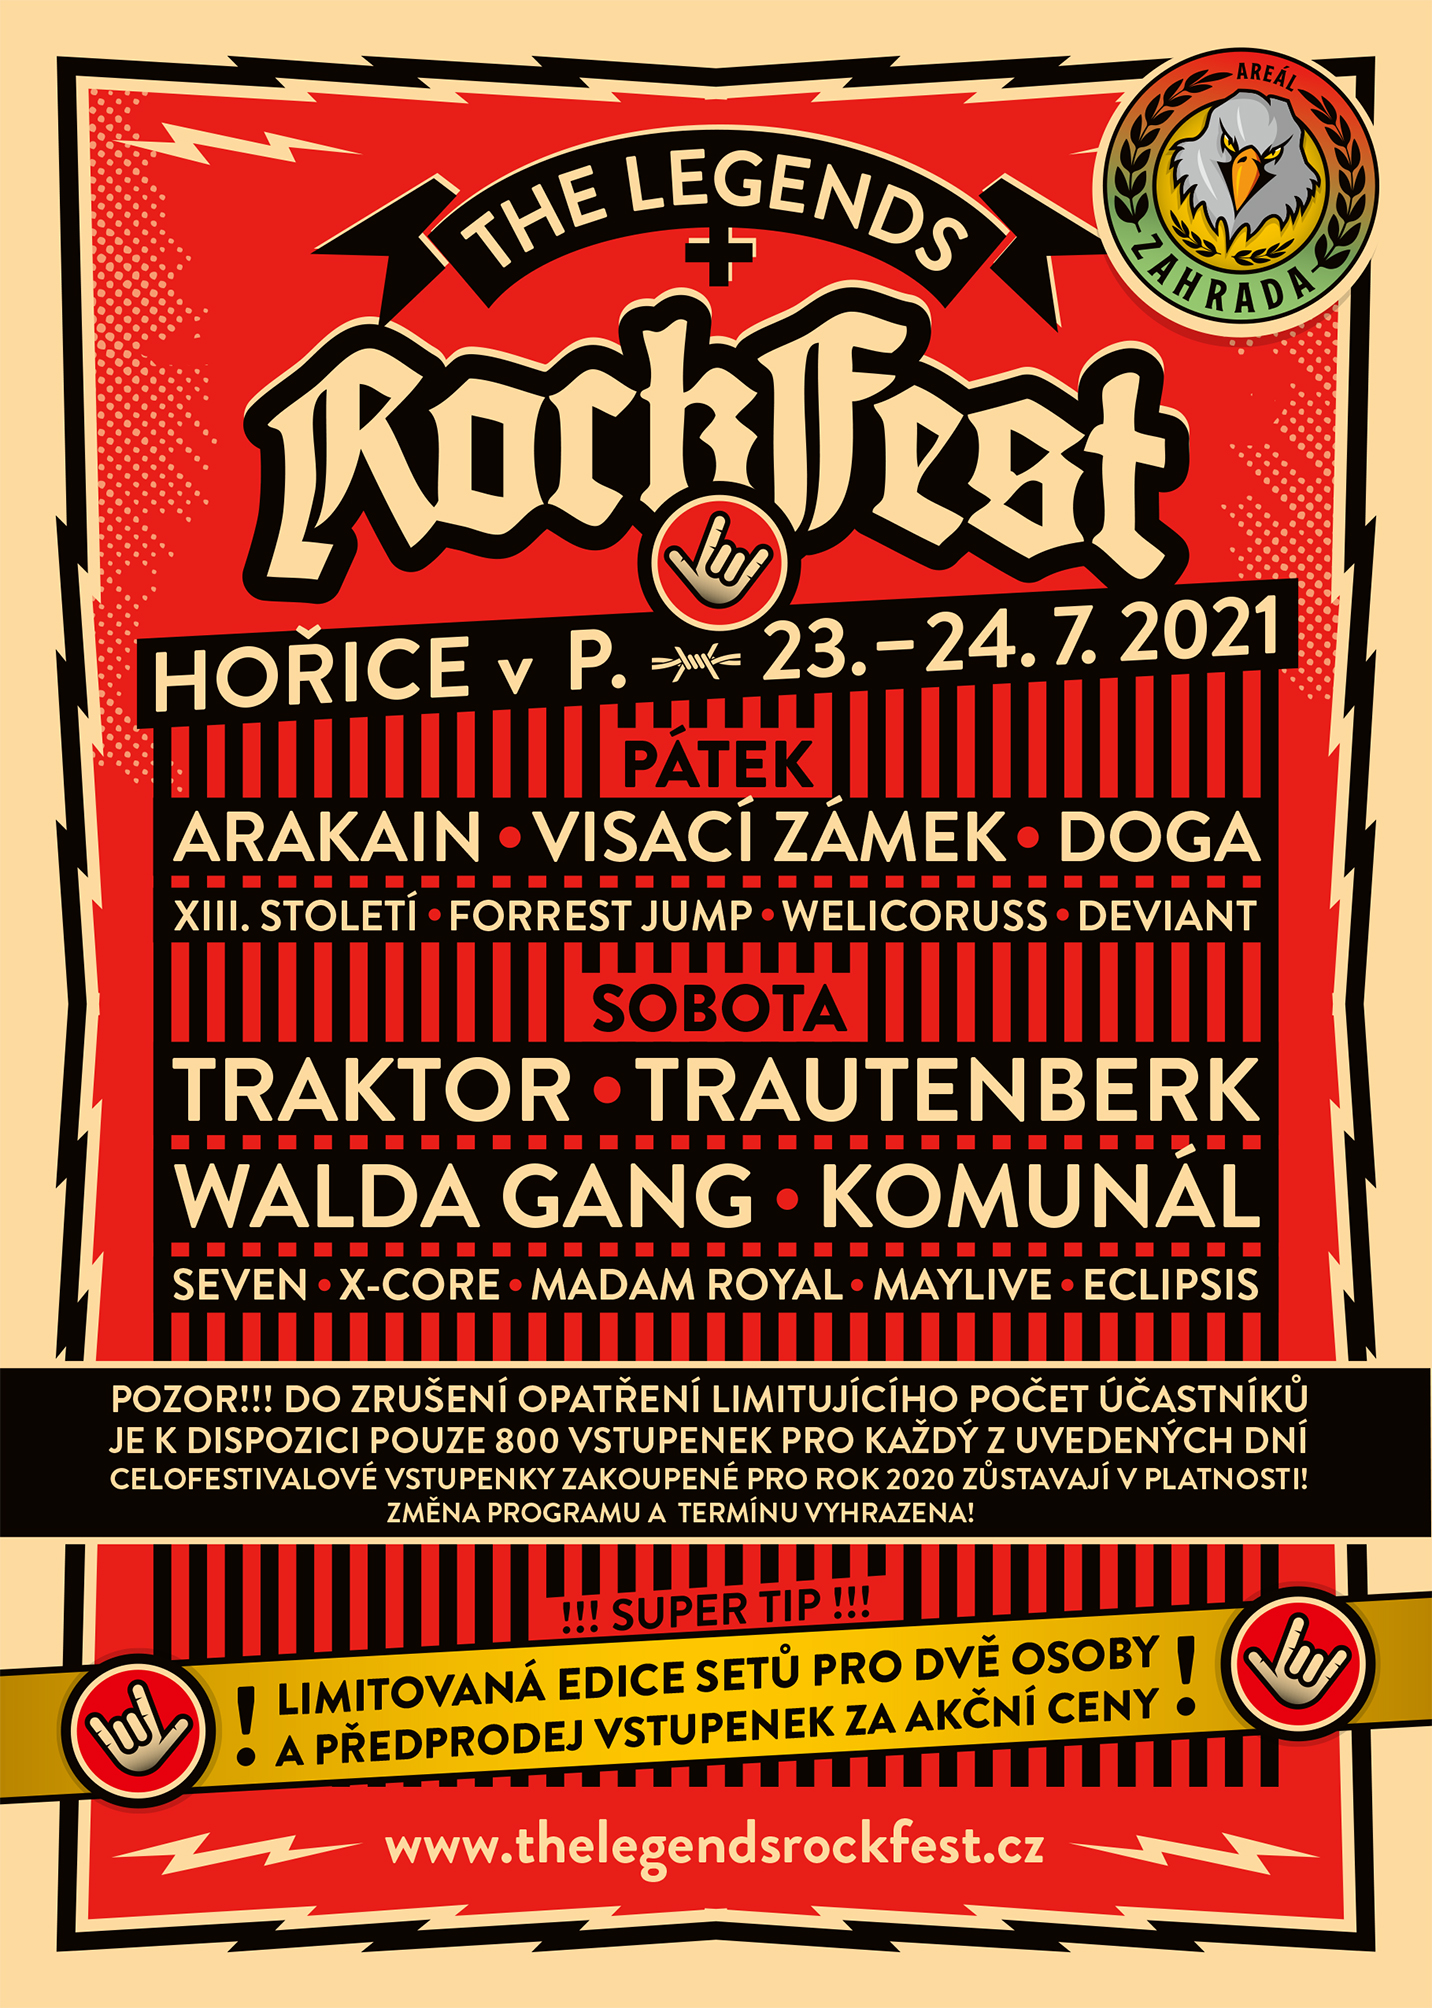 The Legends Rock Fest 2021